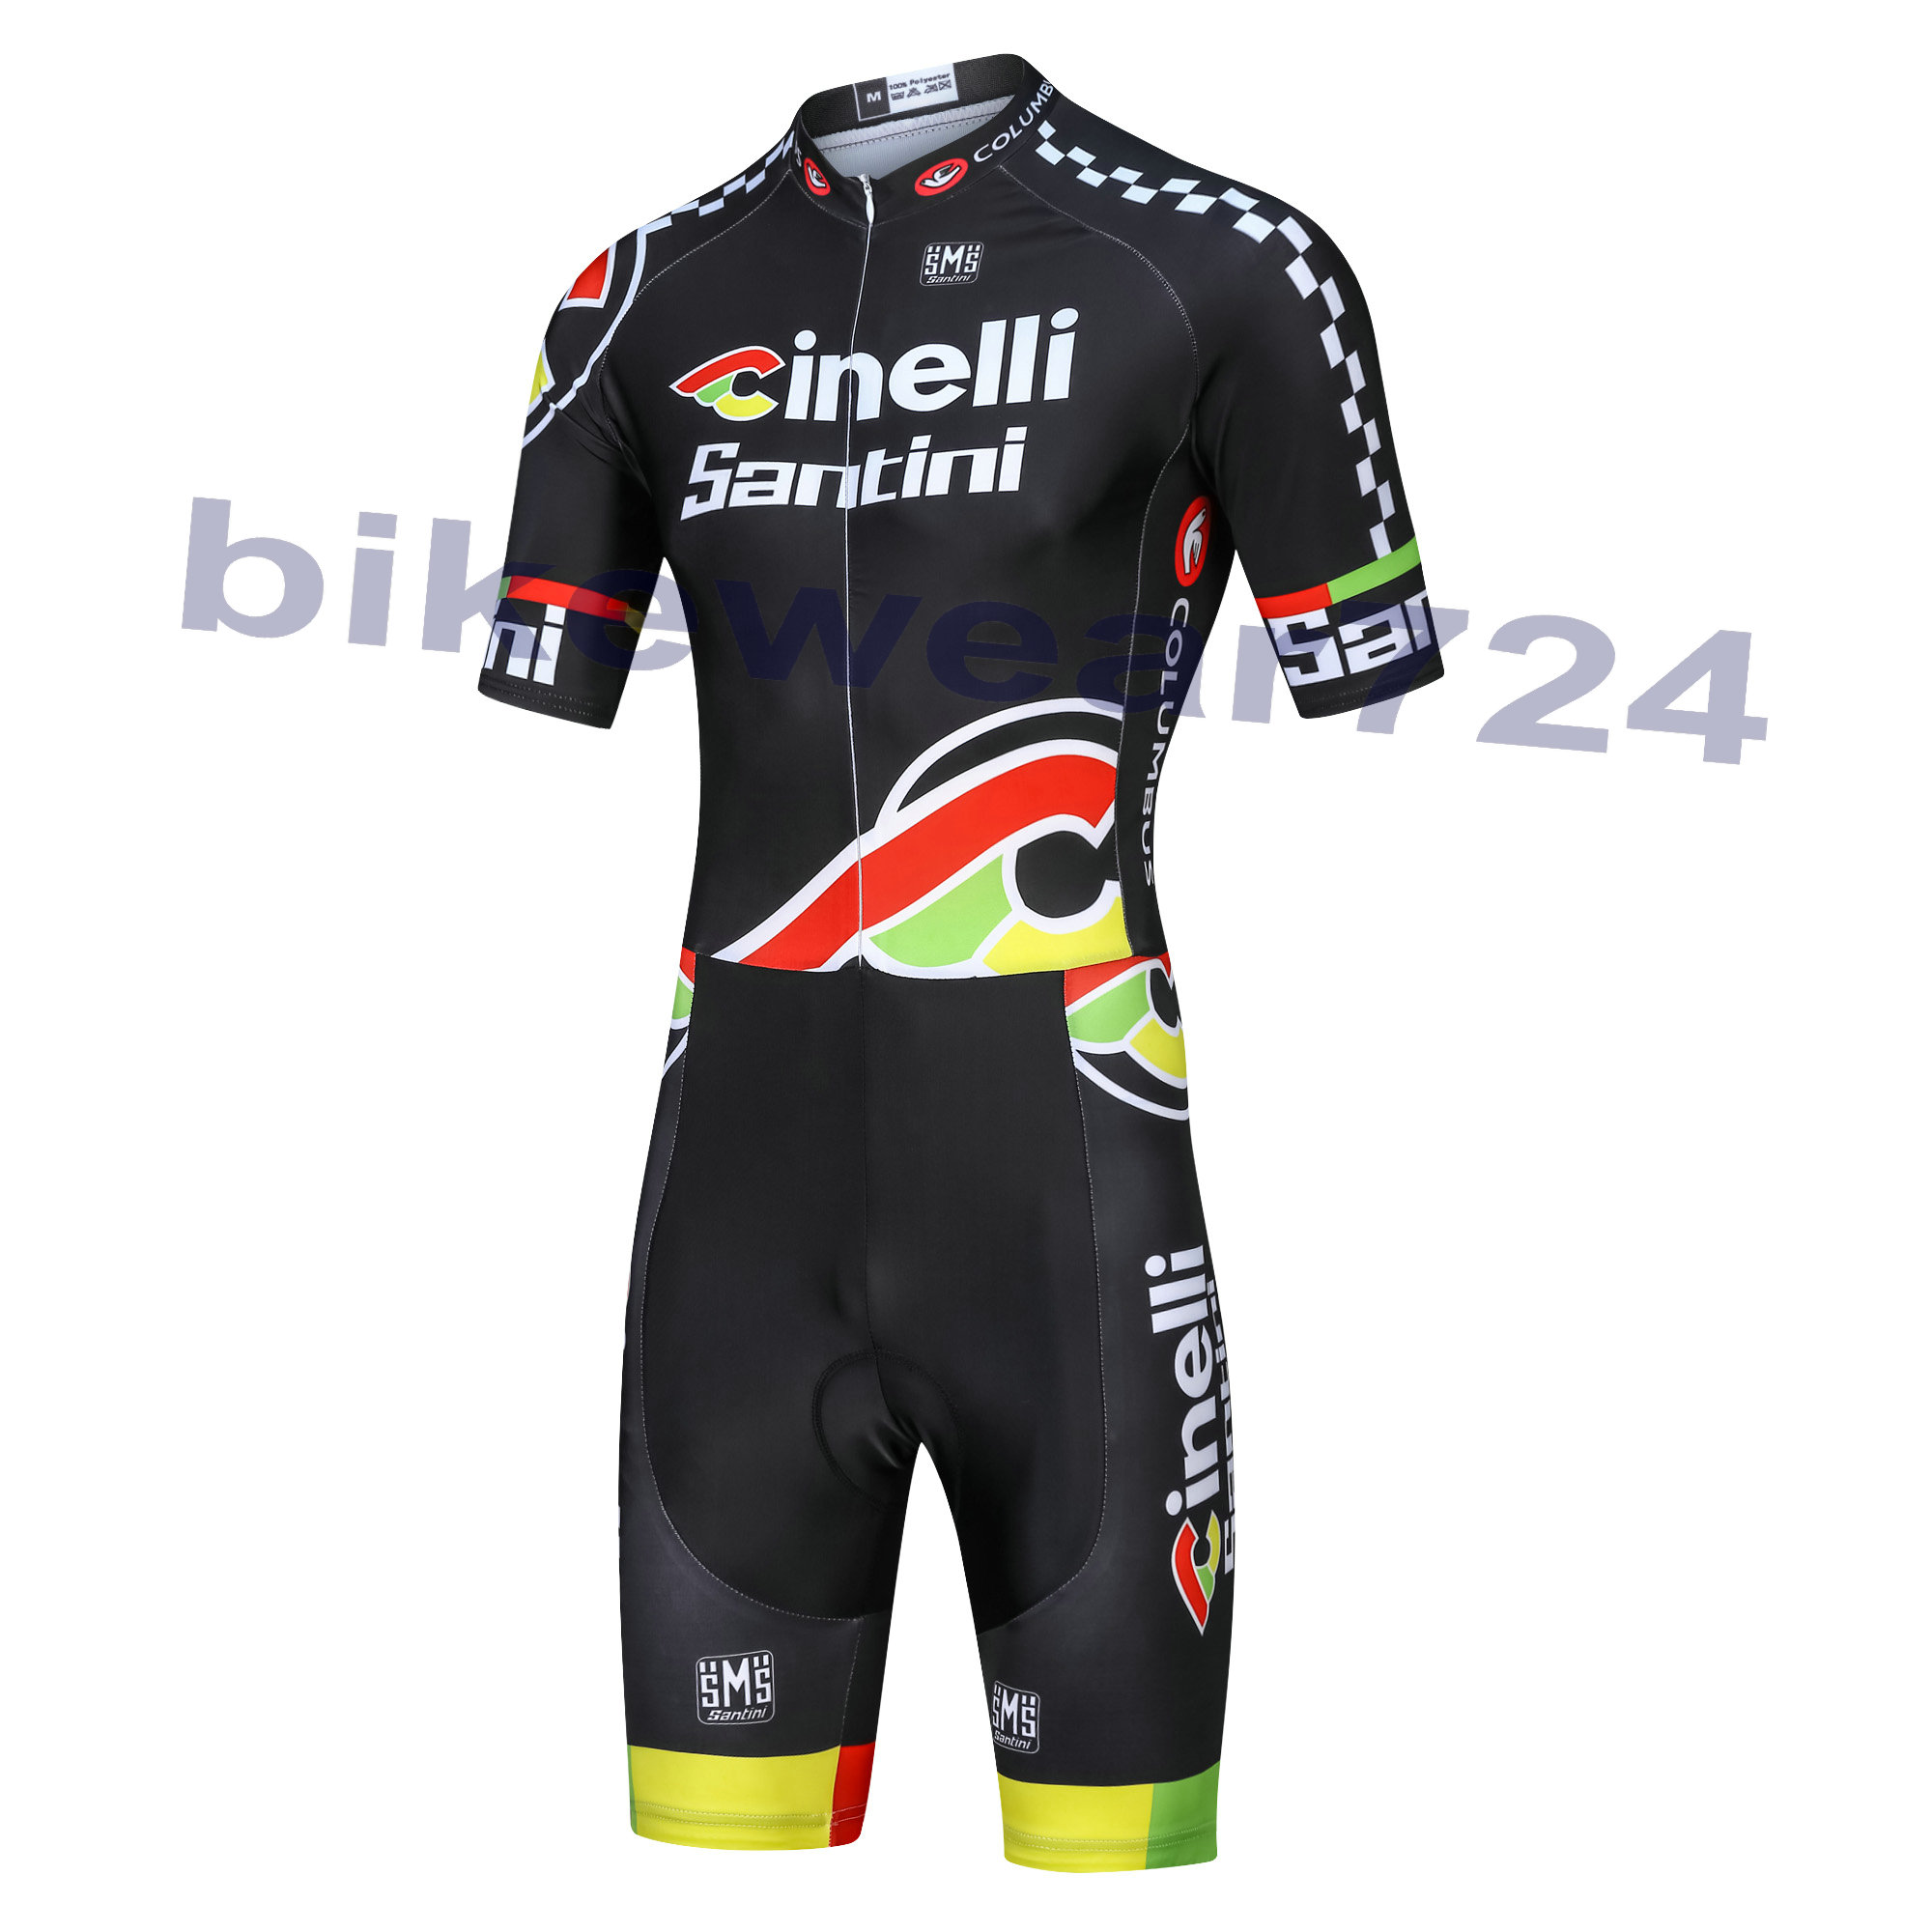 Cinelli Chrome (#1502JS) Cycling Bike Short sleeve Jump Suit Kit Size XS/S/M/L/XL/XXL/XXXL